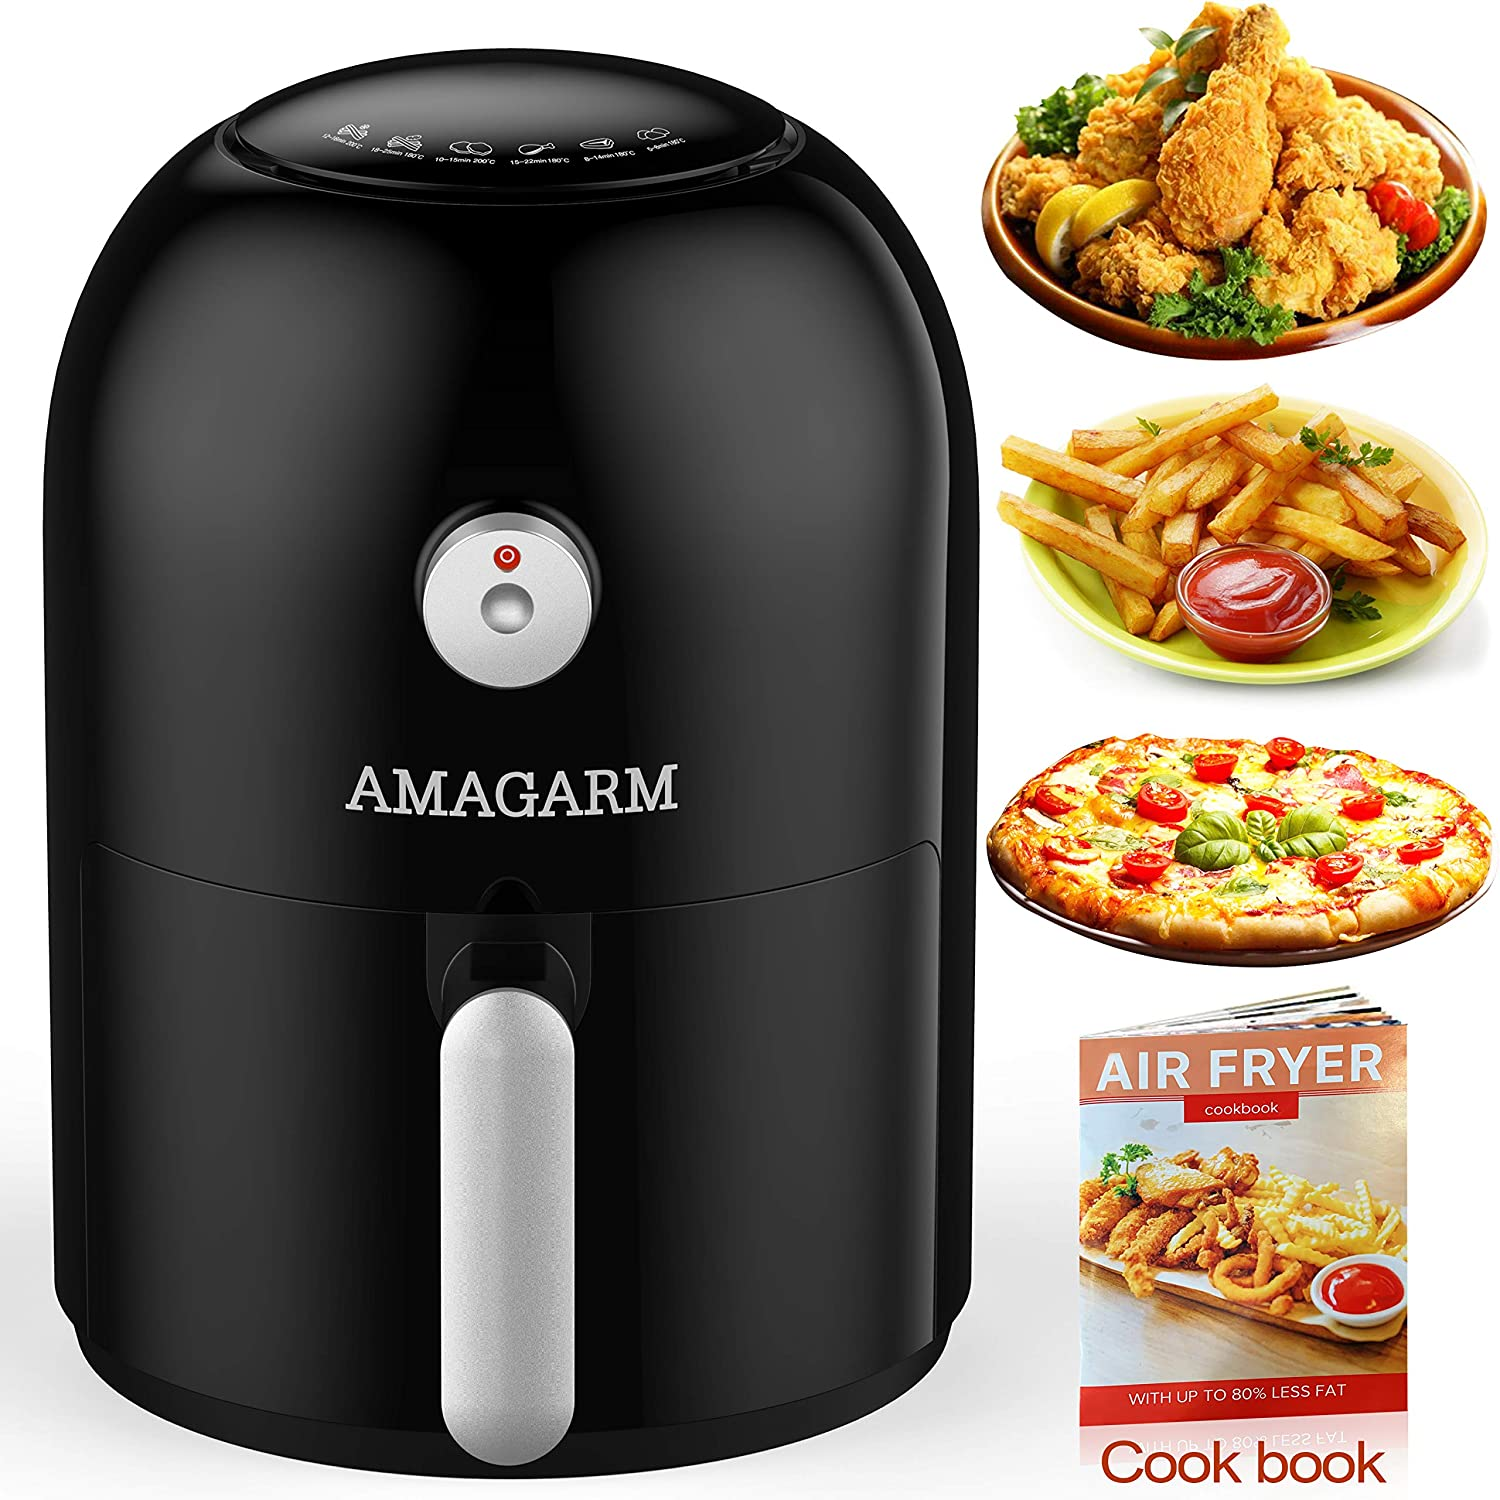 Updated 2019 Version Compact Air Fryer 1.6 Quart, 800 Watt Electric Air Fryer Oven Cooker with Temperature Control, Non Stick Fry Basket, Recipe Guide + Auto Shut off Feature